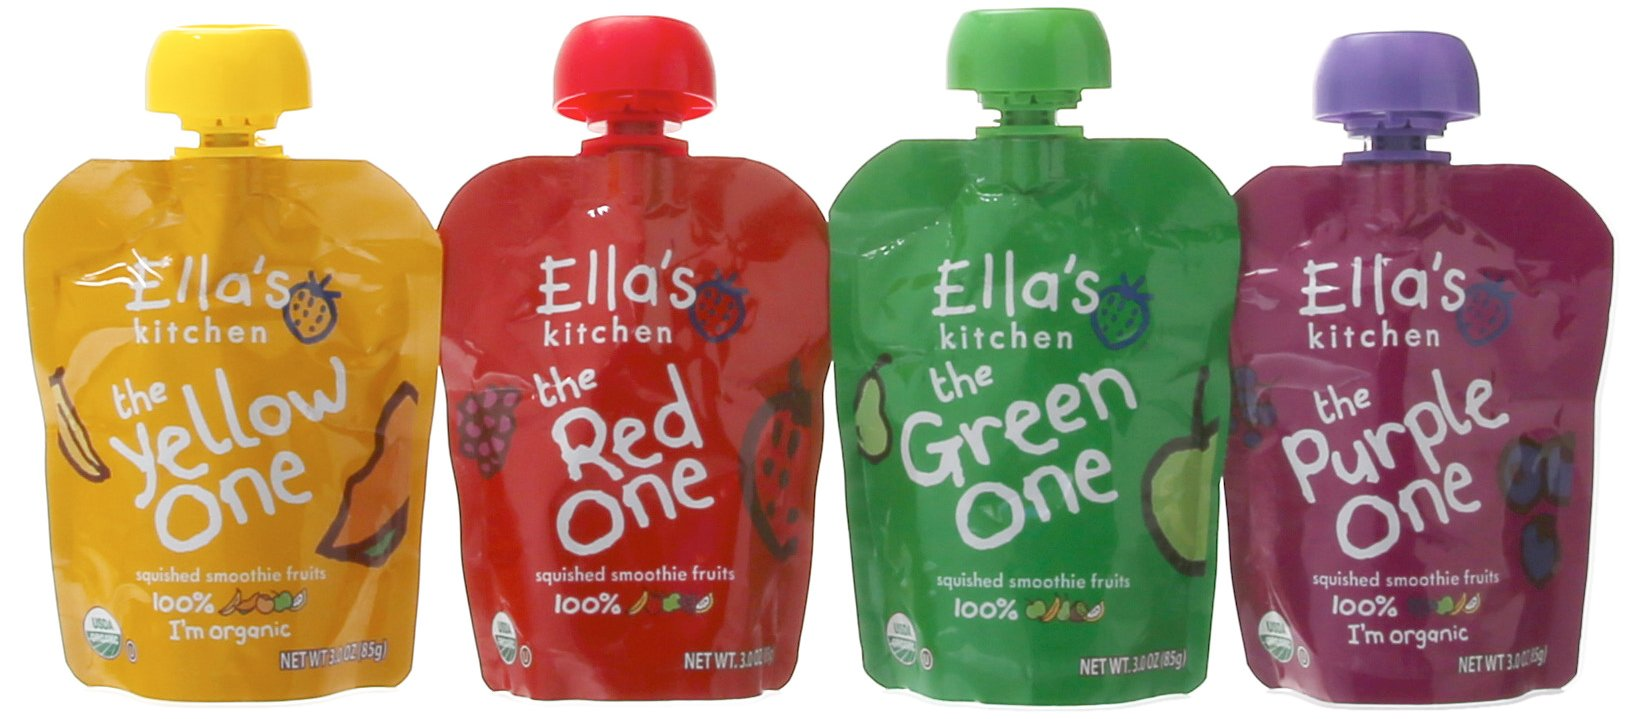 Ella's Kitchen Organic Smoothie Fruits 4 Flavor Variety Pack (8 Total Pouches)